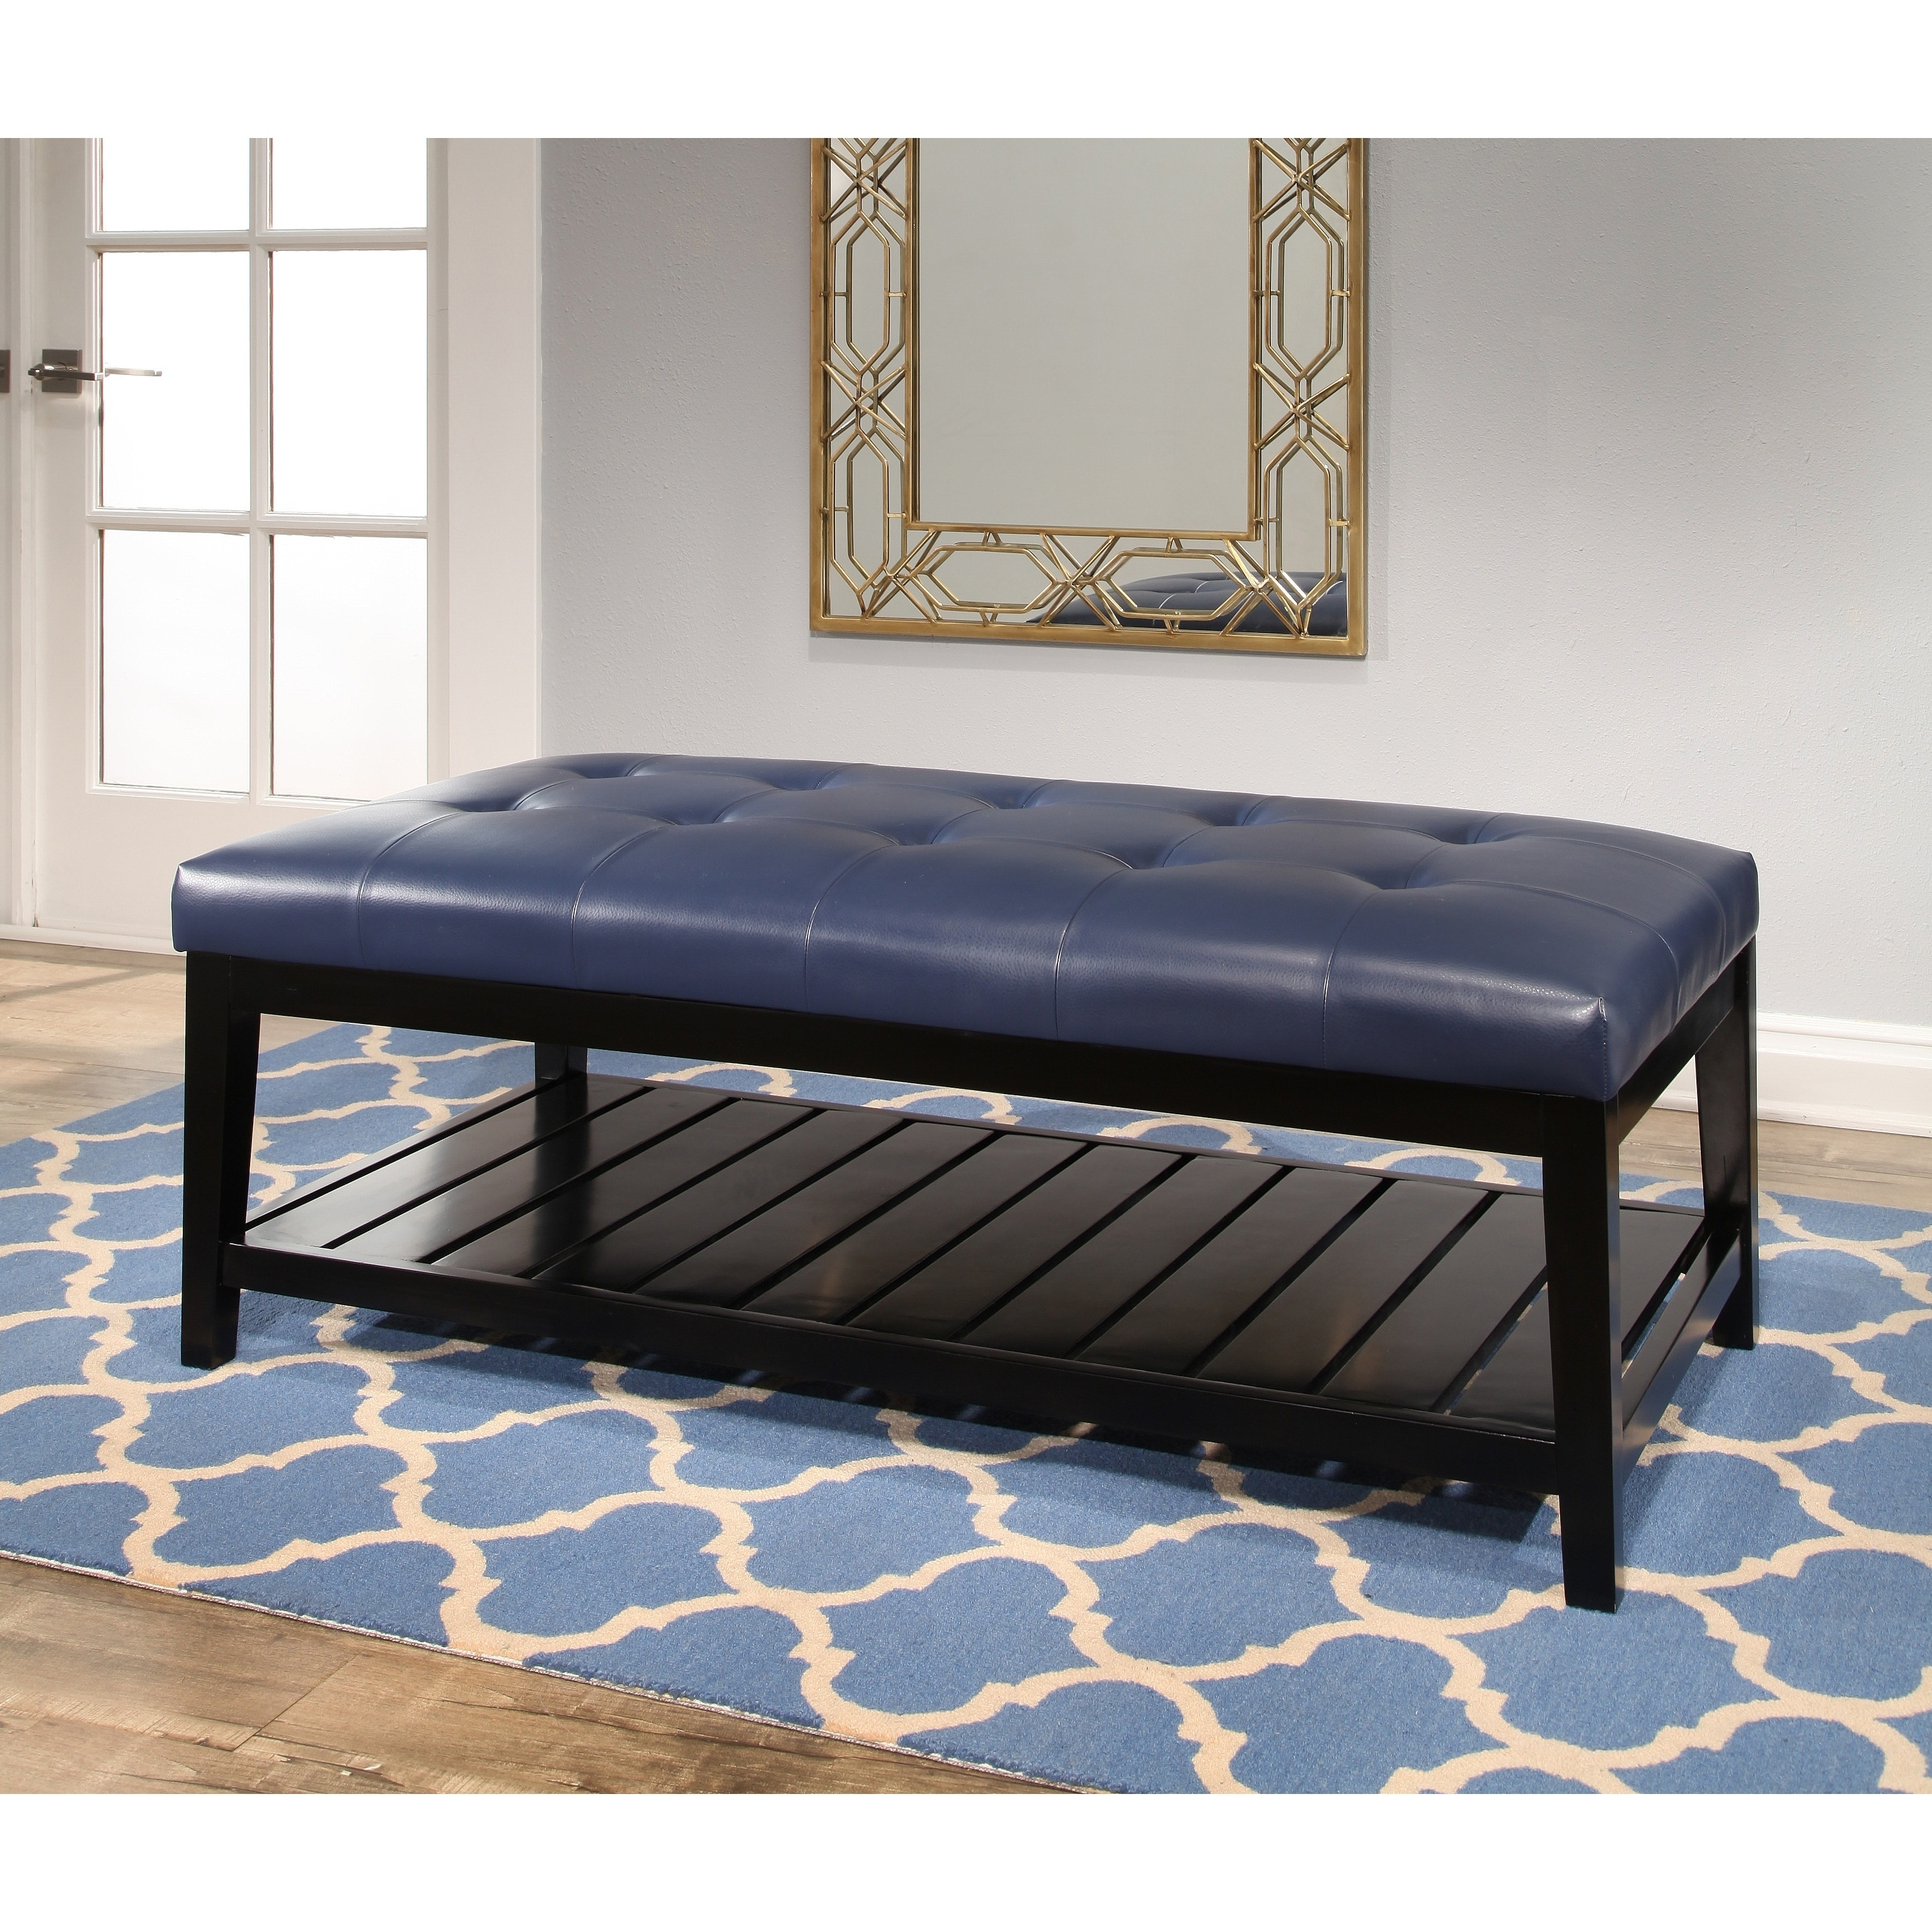 Shop Abbyson Manchester Tufted Leather Coffee Table Ottoman   On Sale    Free Shipping Today   Overstock.com   6342162